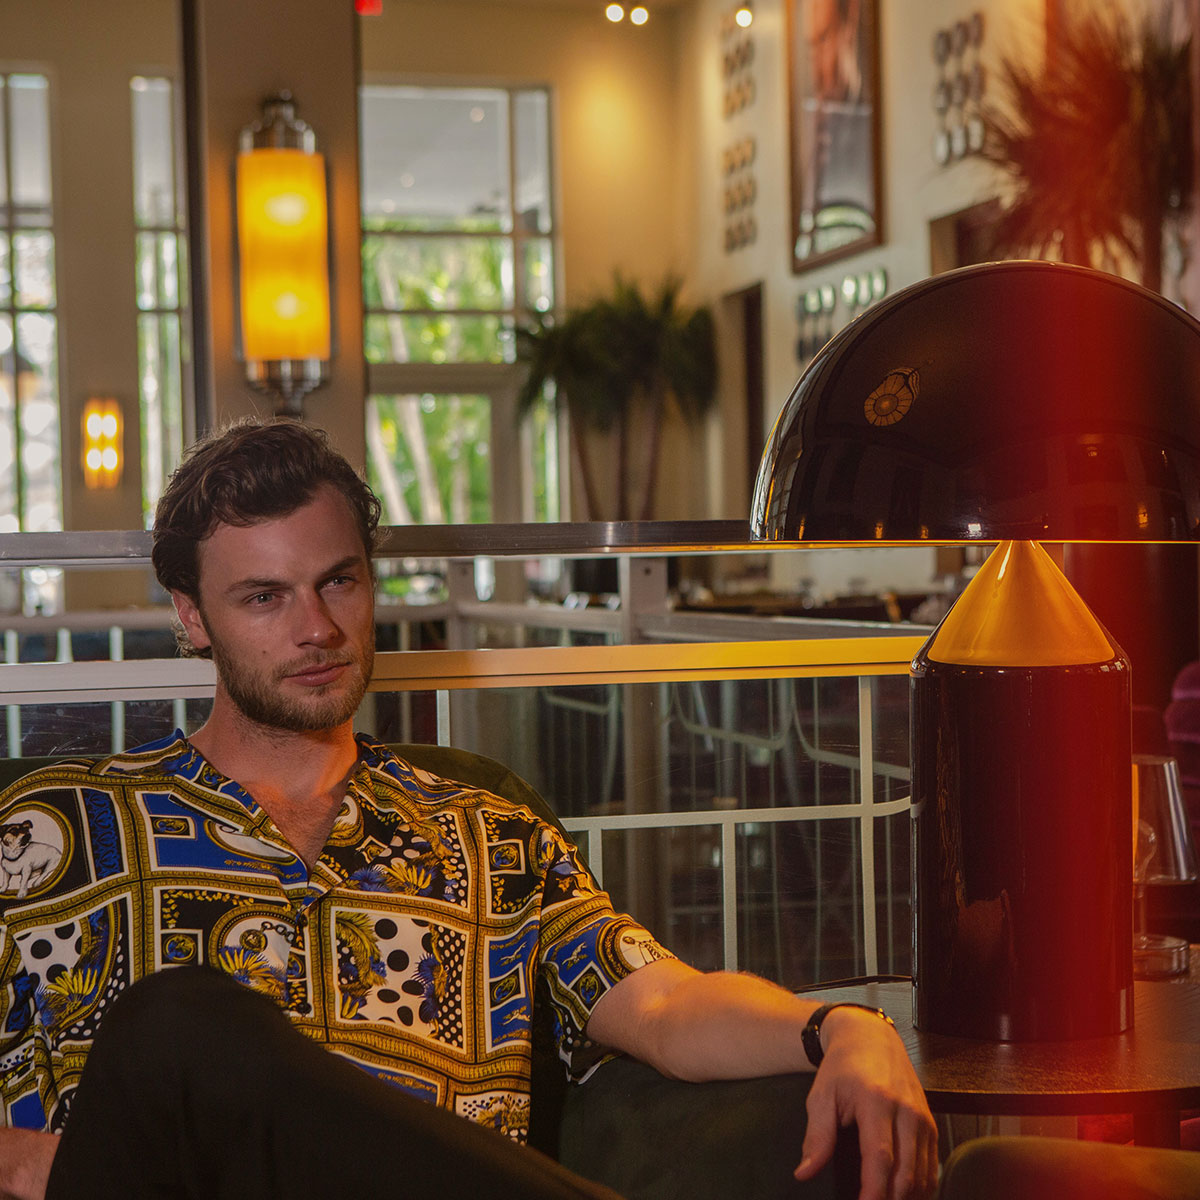 Man sat in bar wearing patterned shirt